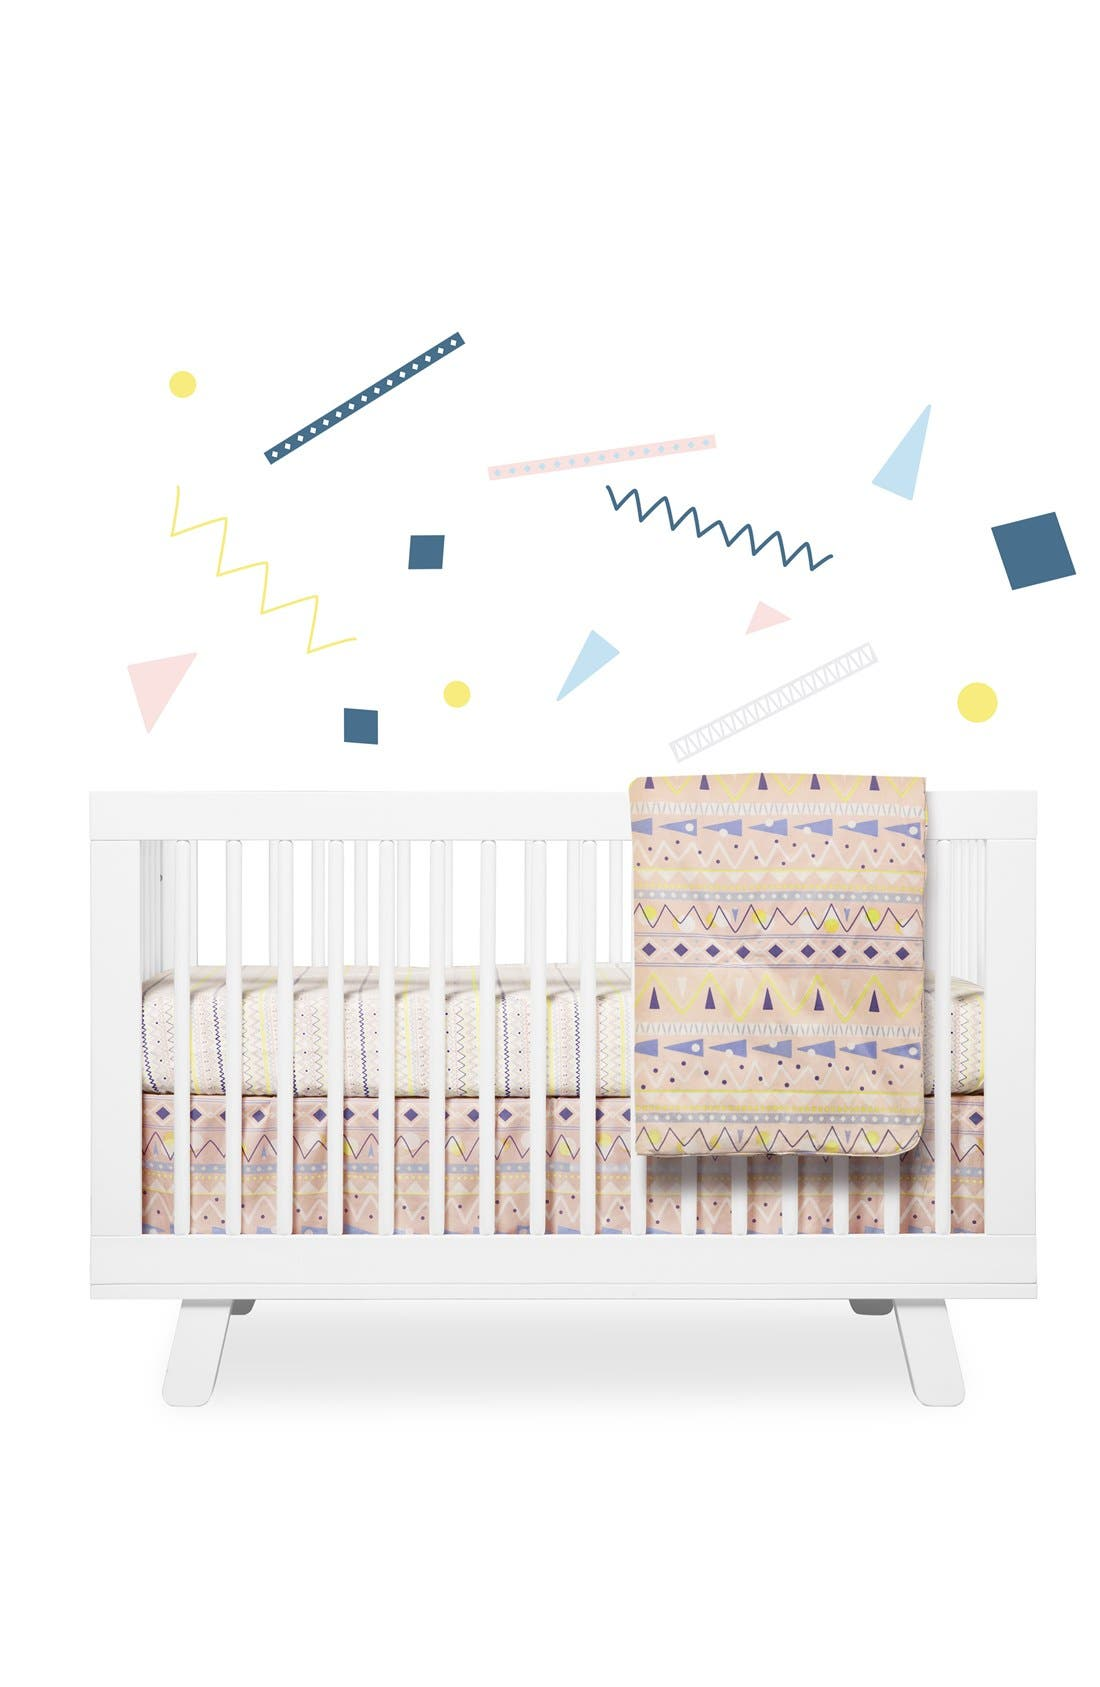 Alternate Image 1 Selected - babyletto 'Desert' Crib Sheet, Crib Skirt, Changing Pad Cover, Play Blanket, Stroller Blanket & Wall Decals